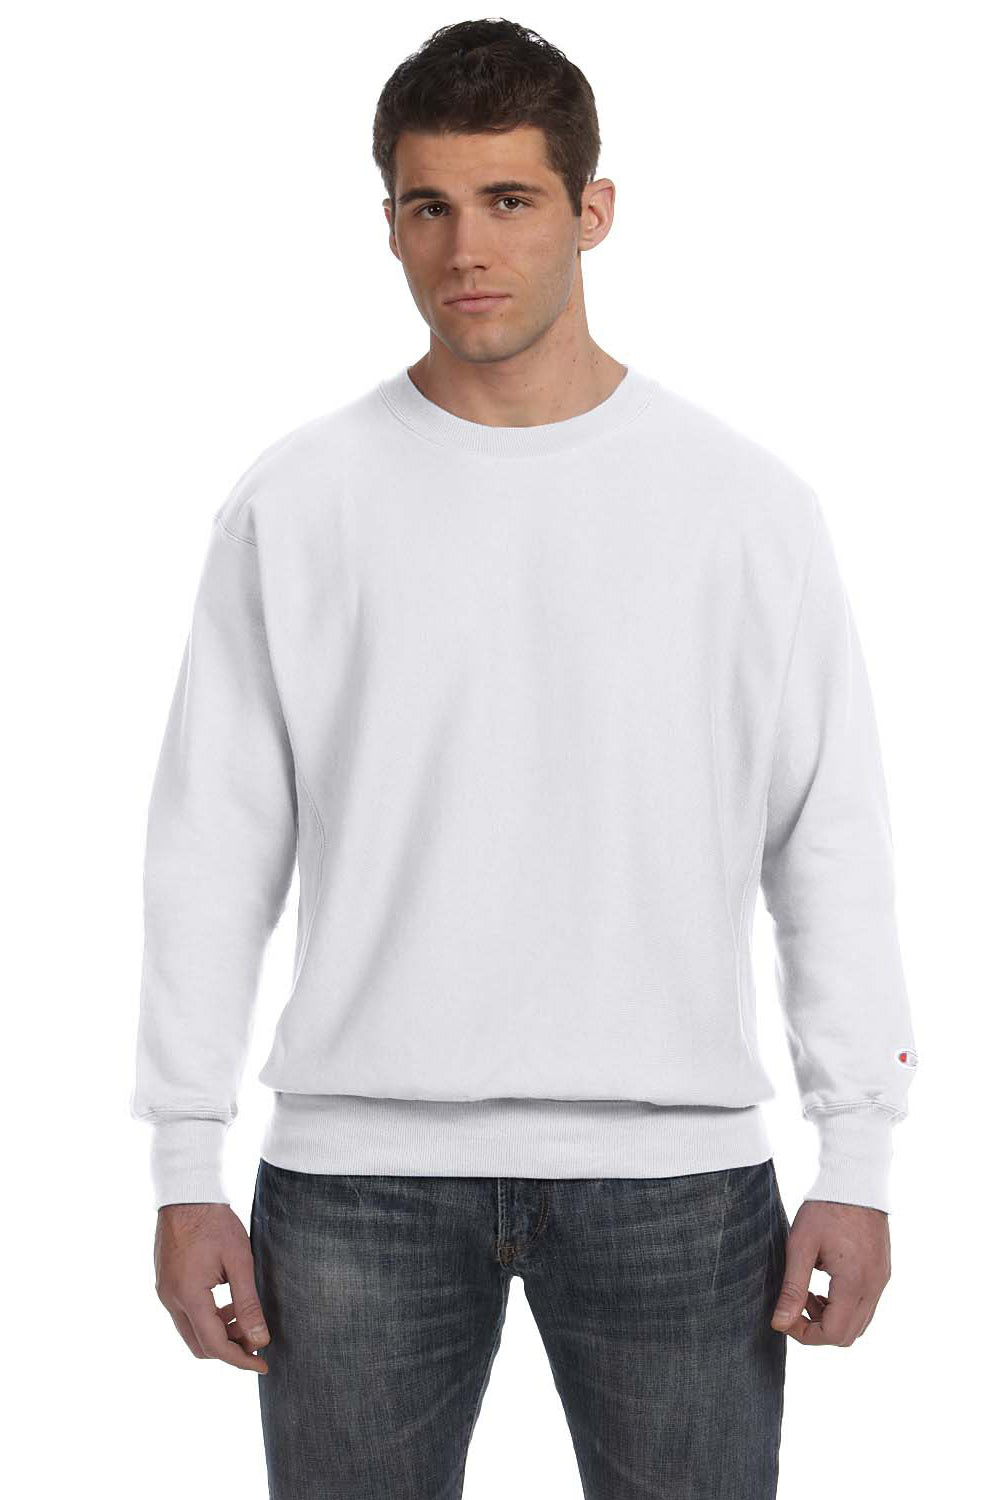 Champion S1049 Mens Crewneck Sweatshirt Silver Grey Front